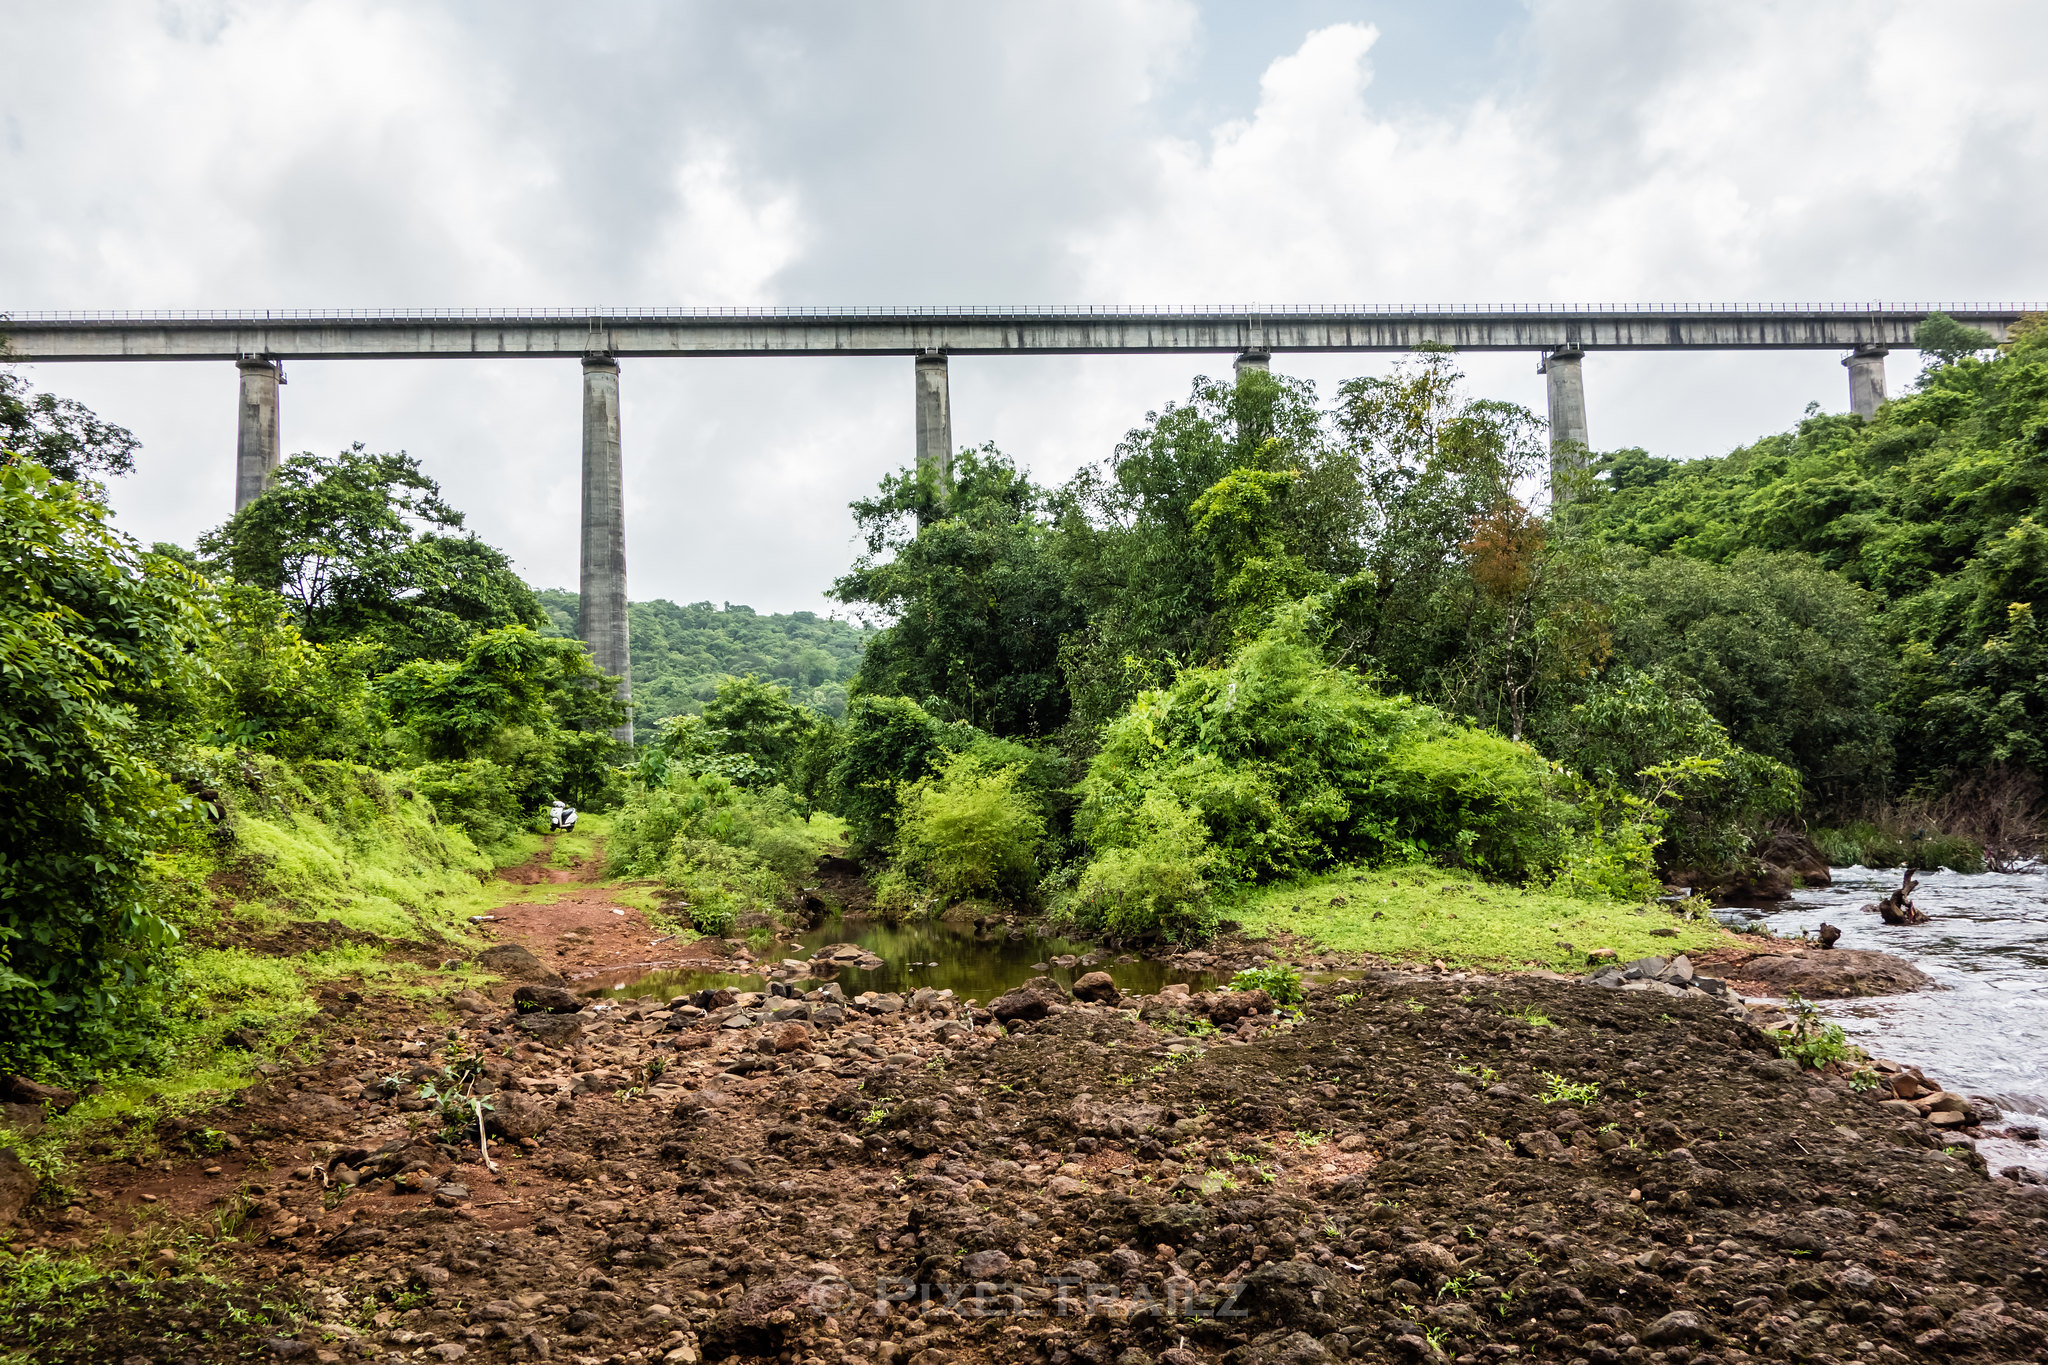 Panvel River & The Viaduct